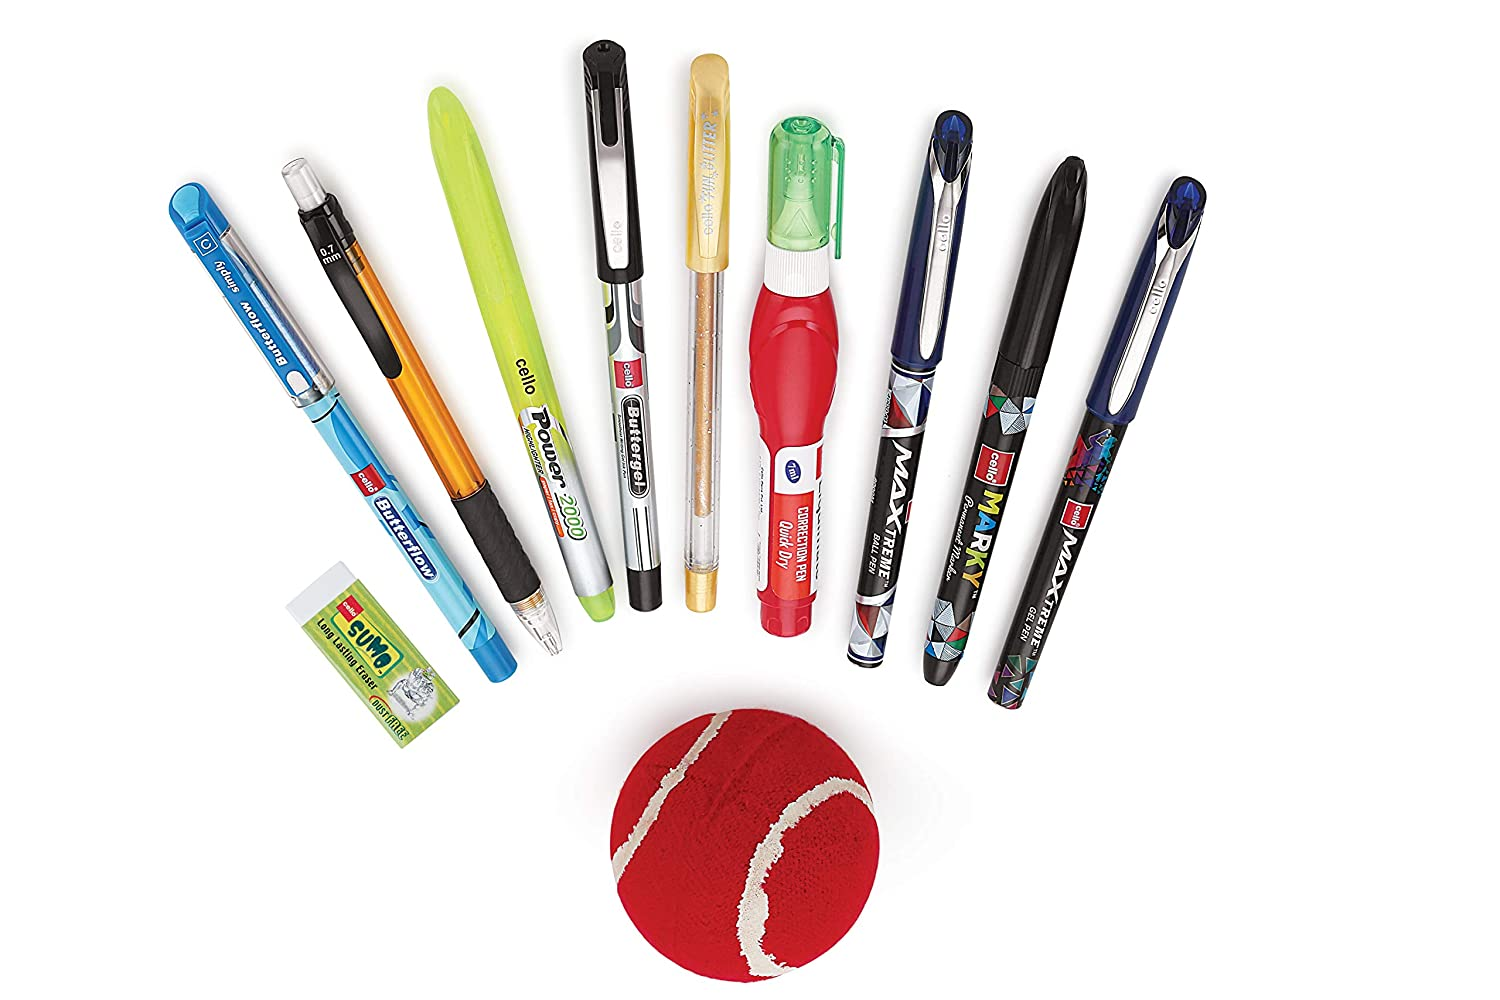 Cello Cricket Fever Stationery Box with Ball + Scratch Card to meet Bumrah